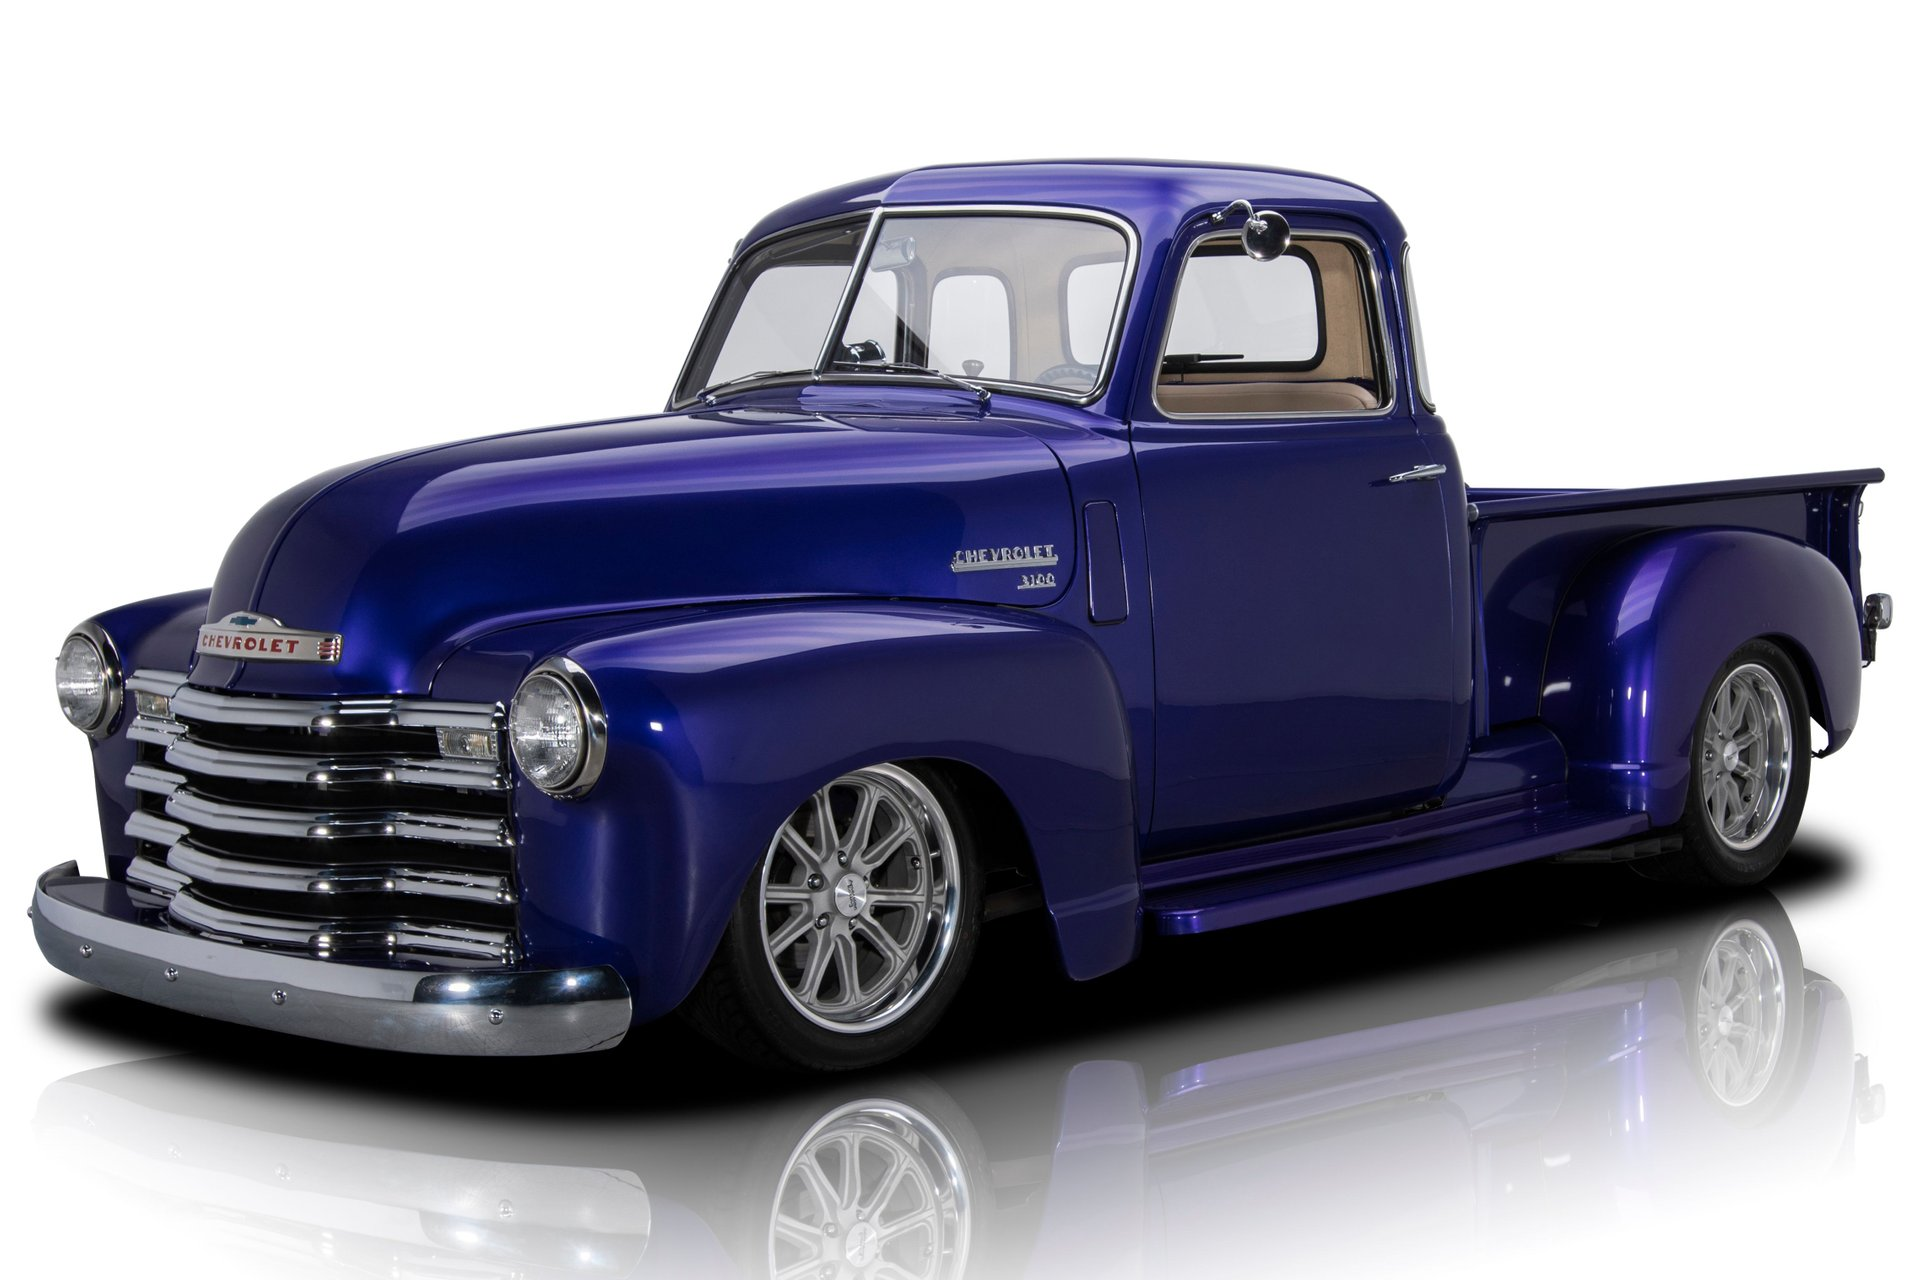 136706 1950 Chevrolet 3100 Rk Motors Classic Cars And Muscle Cars For Sale